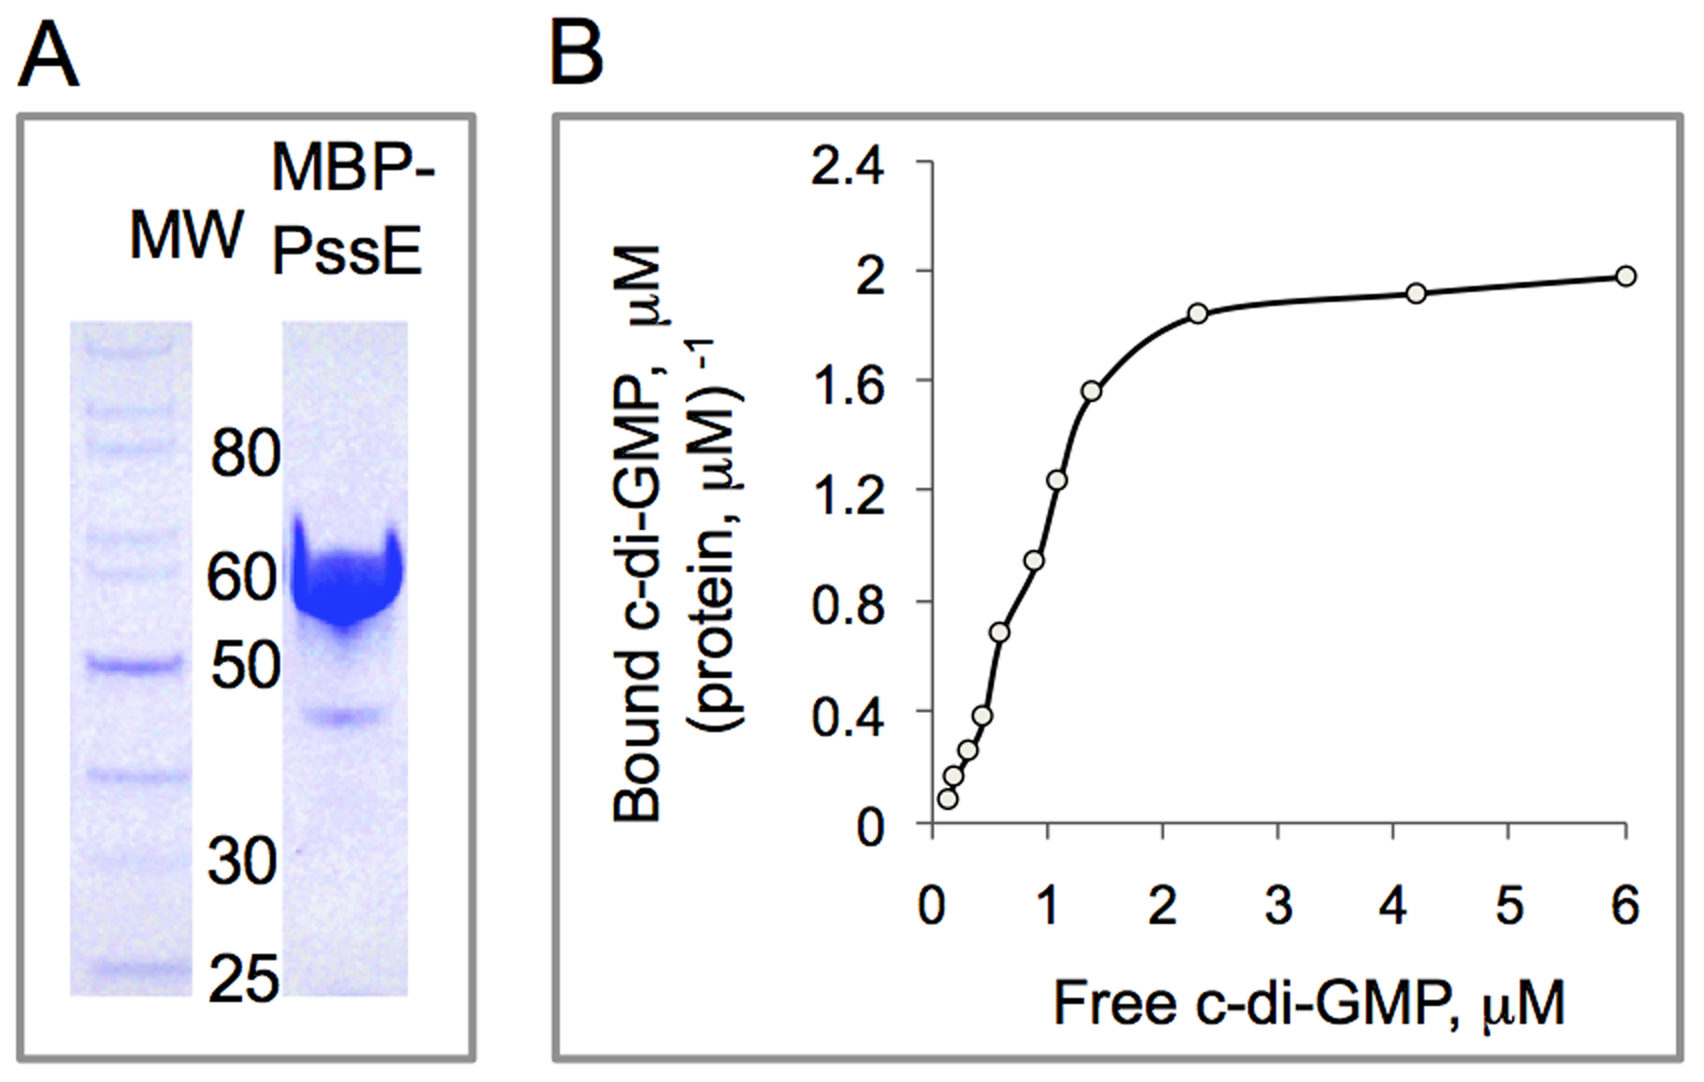 In vitro assay of c-di-GMP binding by the PssE receptor.